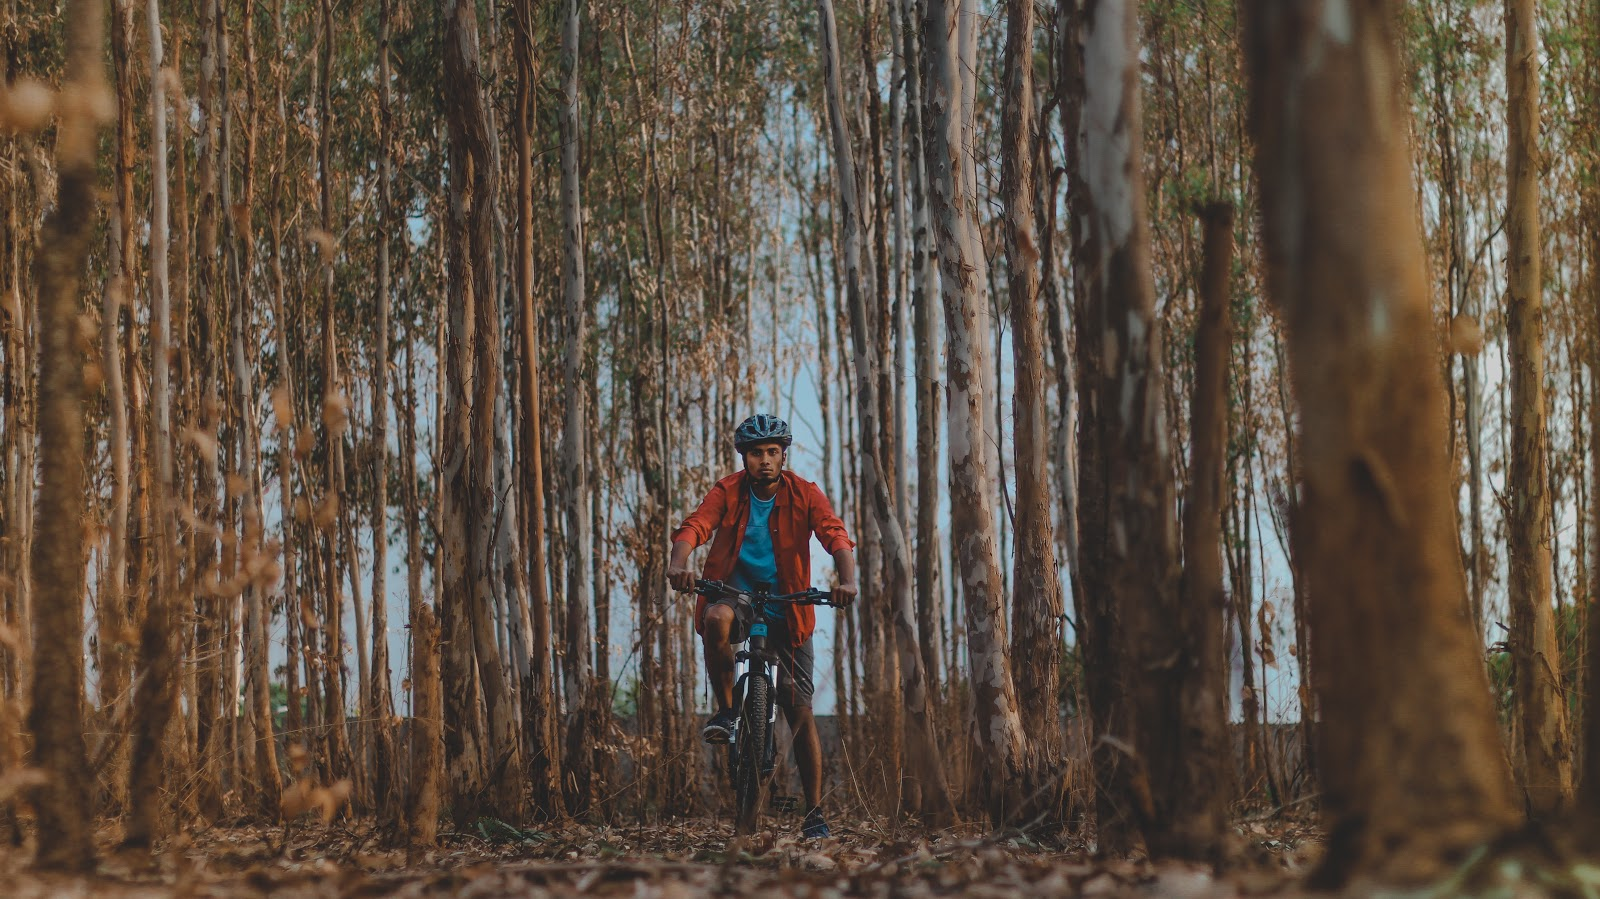 The turahalli forest cycling route. Turahalli trekking. Check out coppernicus.com for more information